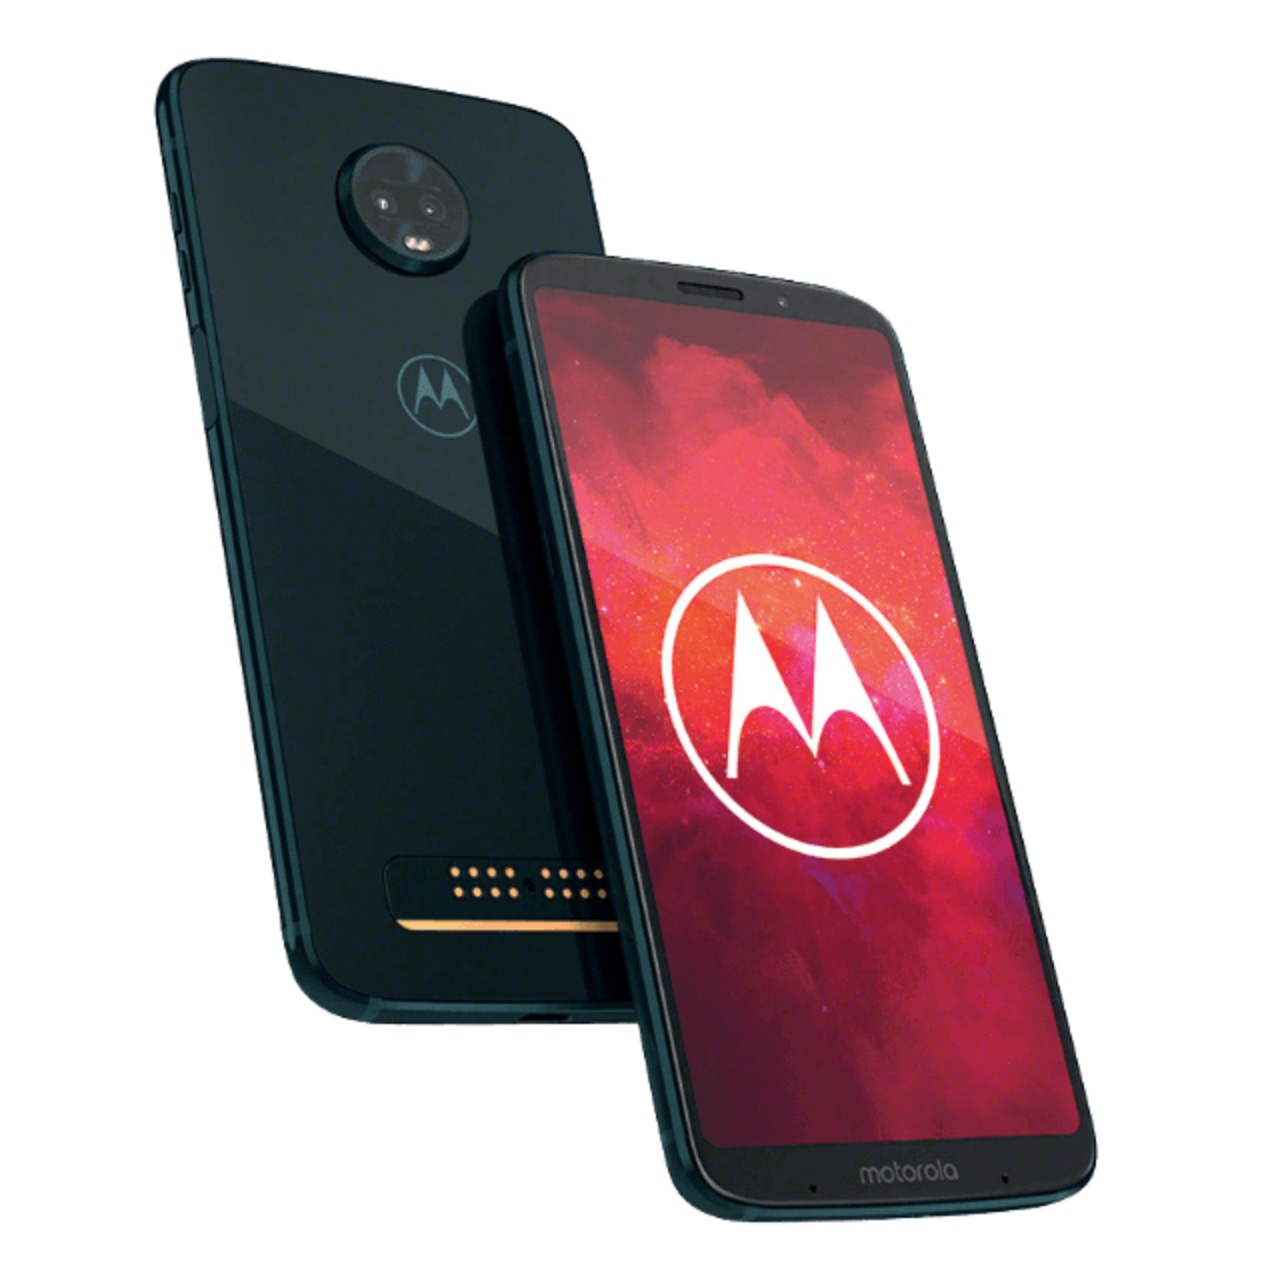 motorola aktion bei mediamarkt z b moto z3 play. Black Bedroom Furniture Sets. Home Design Ideas